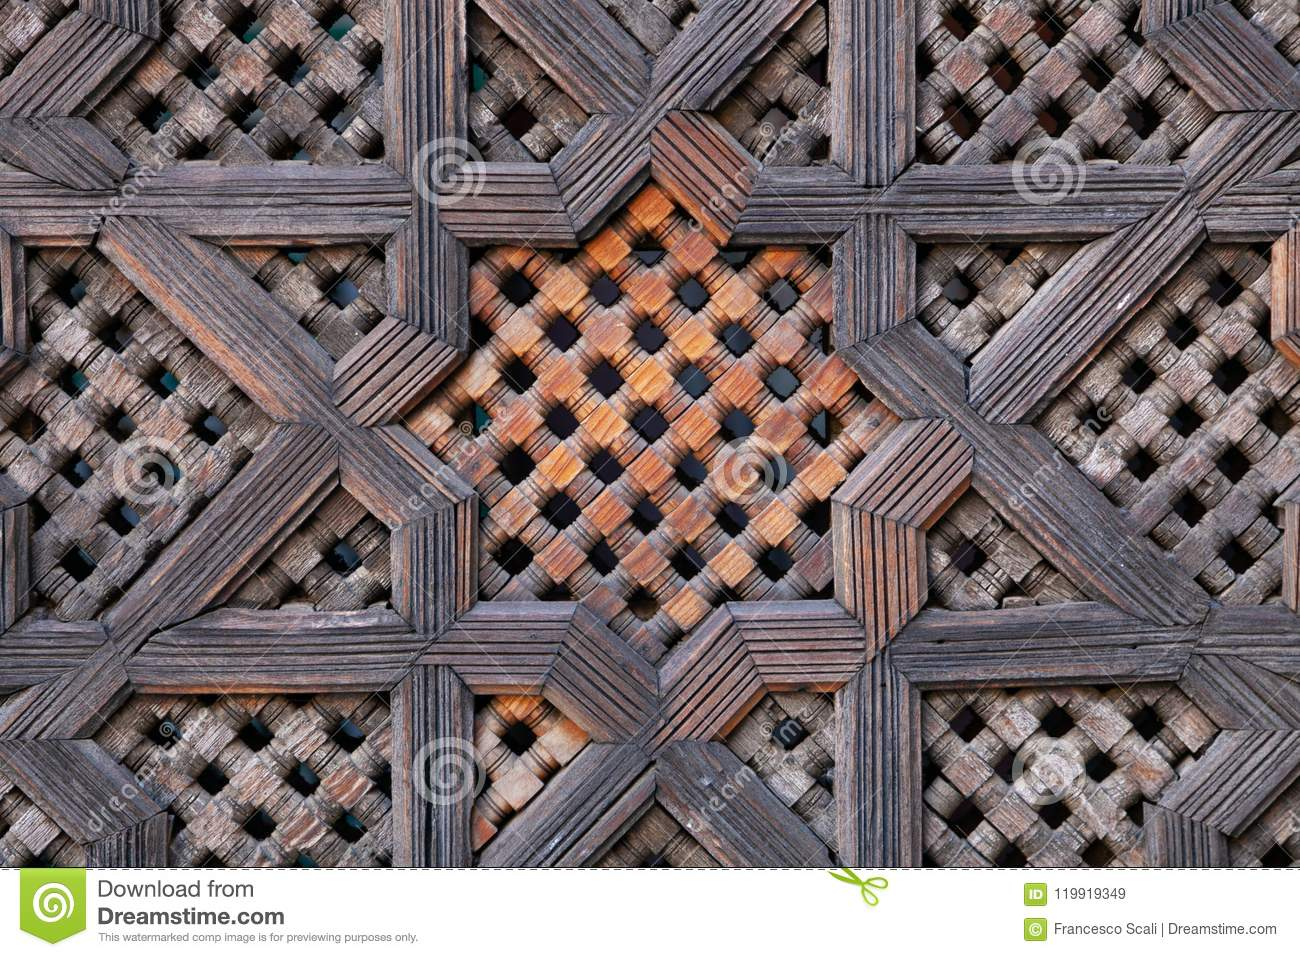 Carved wood screen in Morocco